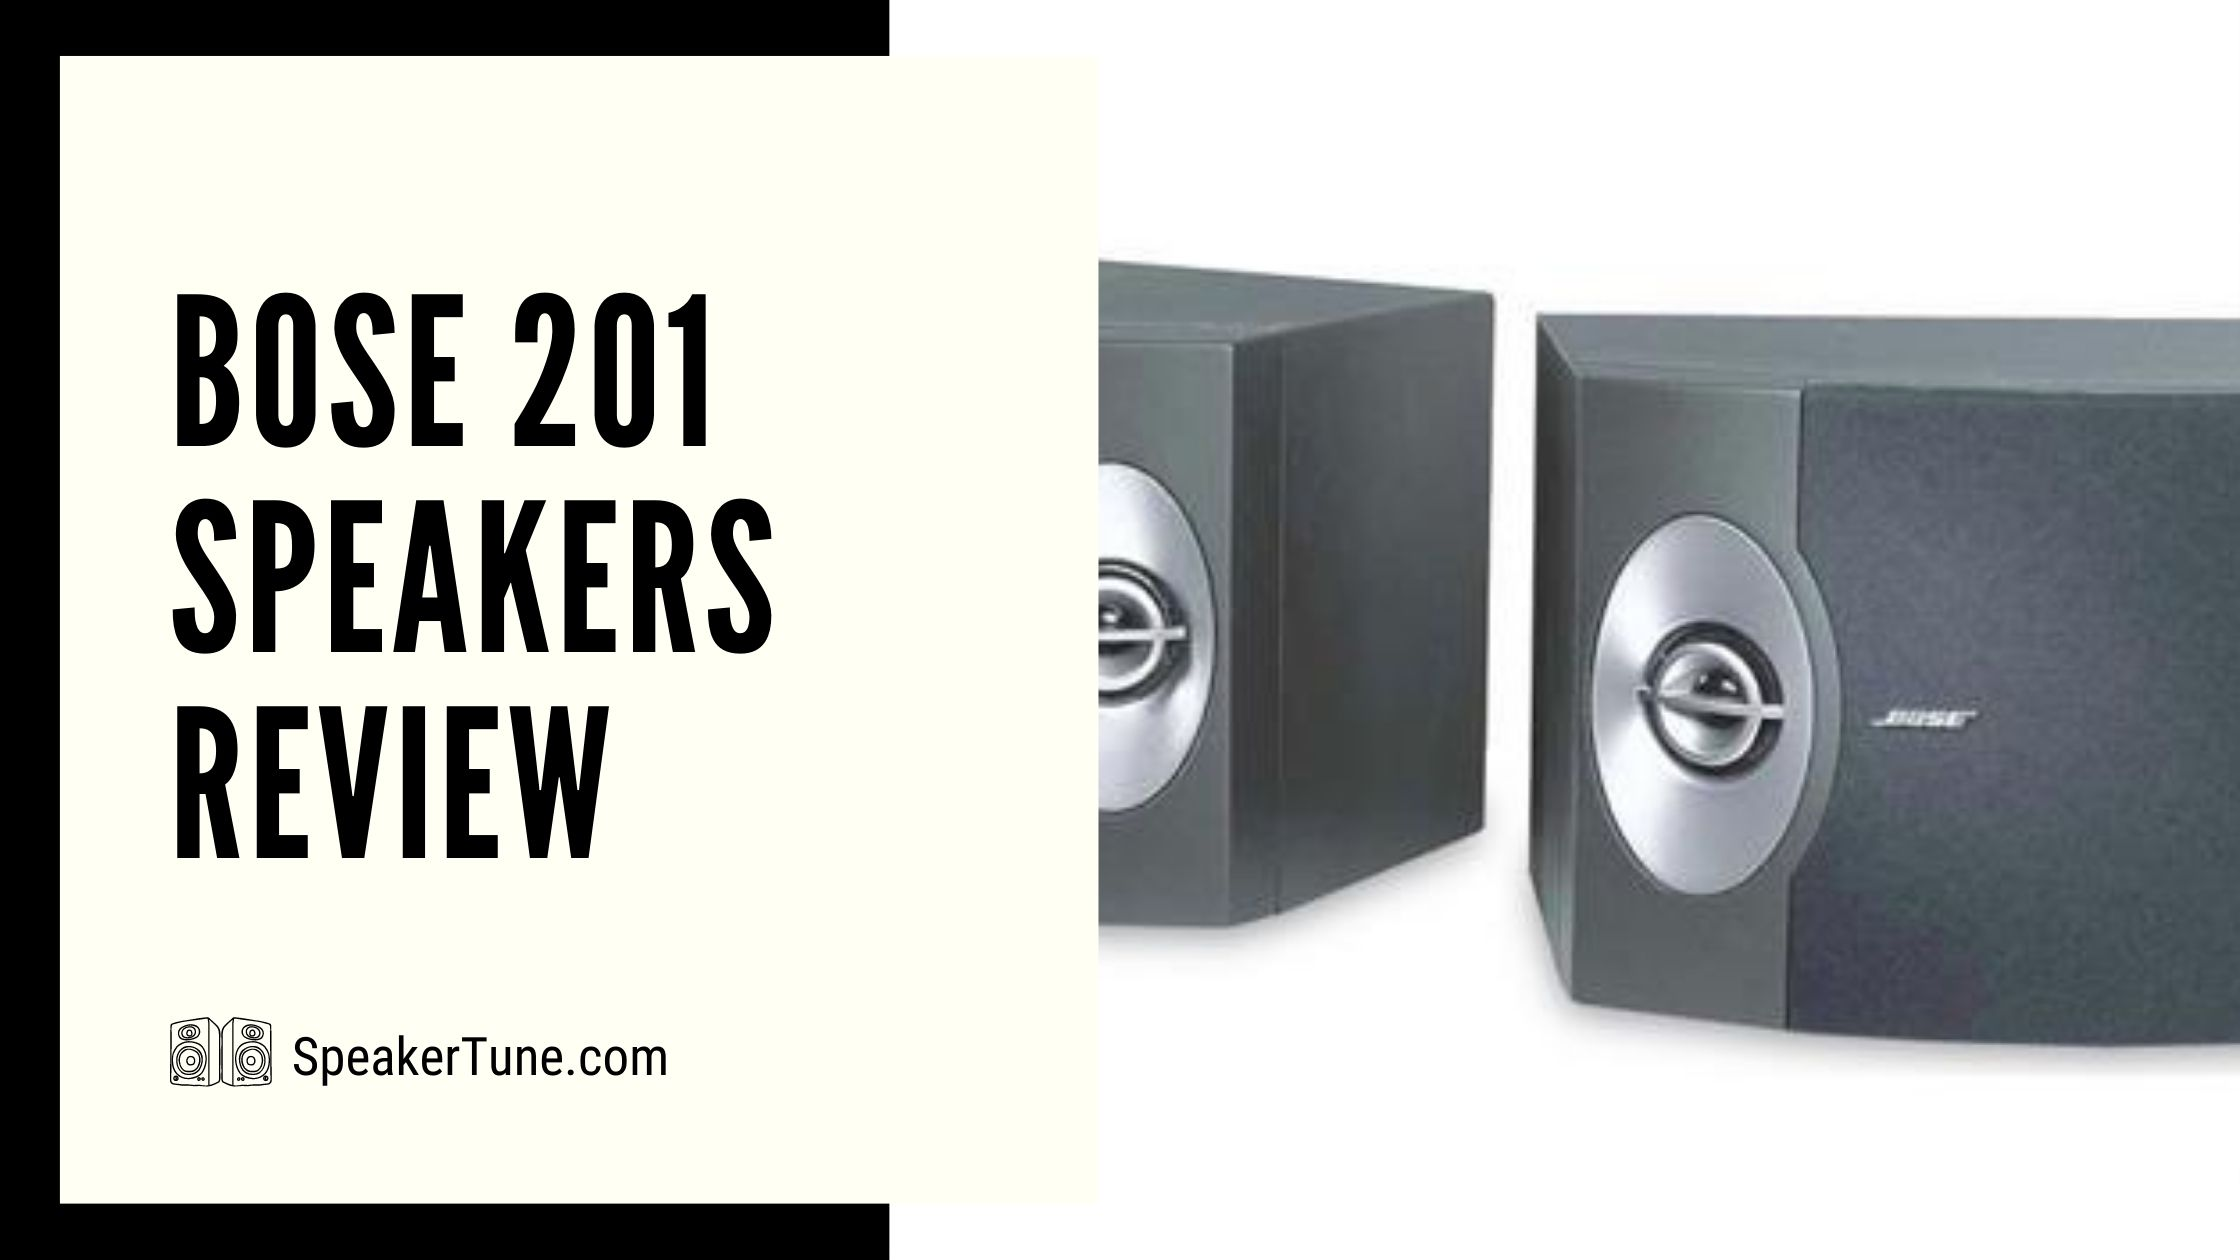 ST-bose-201-speakers-review